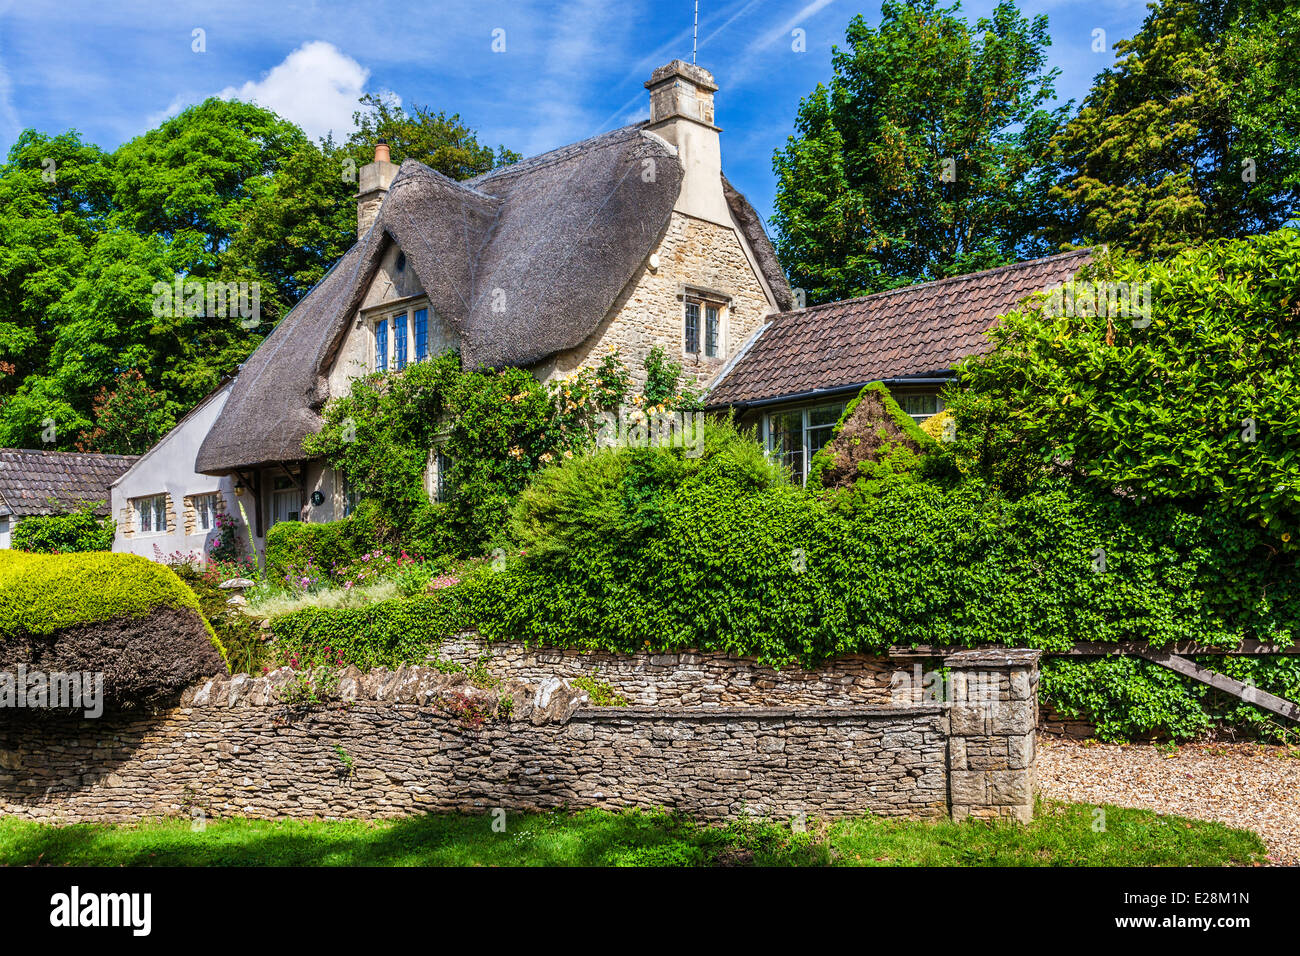 The picturesque thatched cottage in the Cotswold village of Castle Combe in Wiltshire. - Stock Image